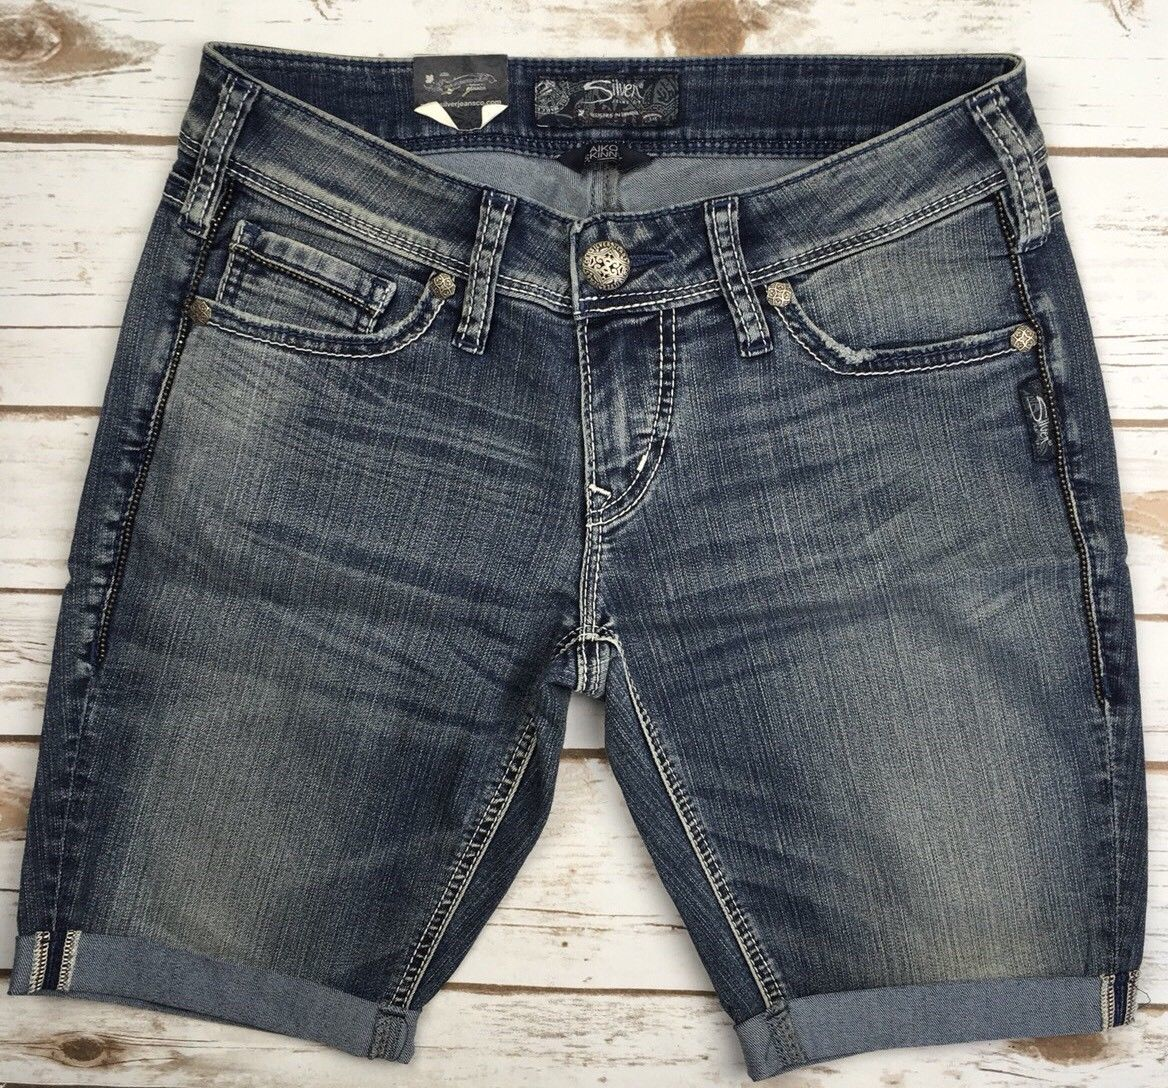 SILVER JEANS SHORTS Buckle Mid Rise Aiko Jean Light Denim Cuffed Short 28